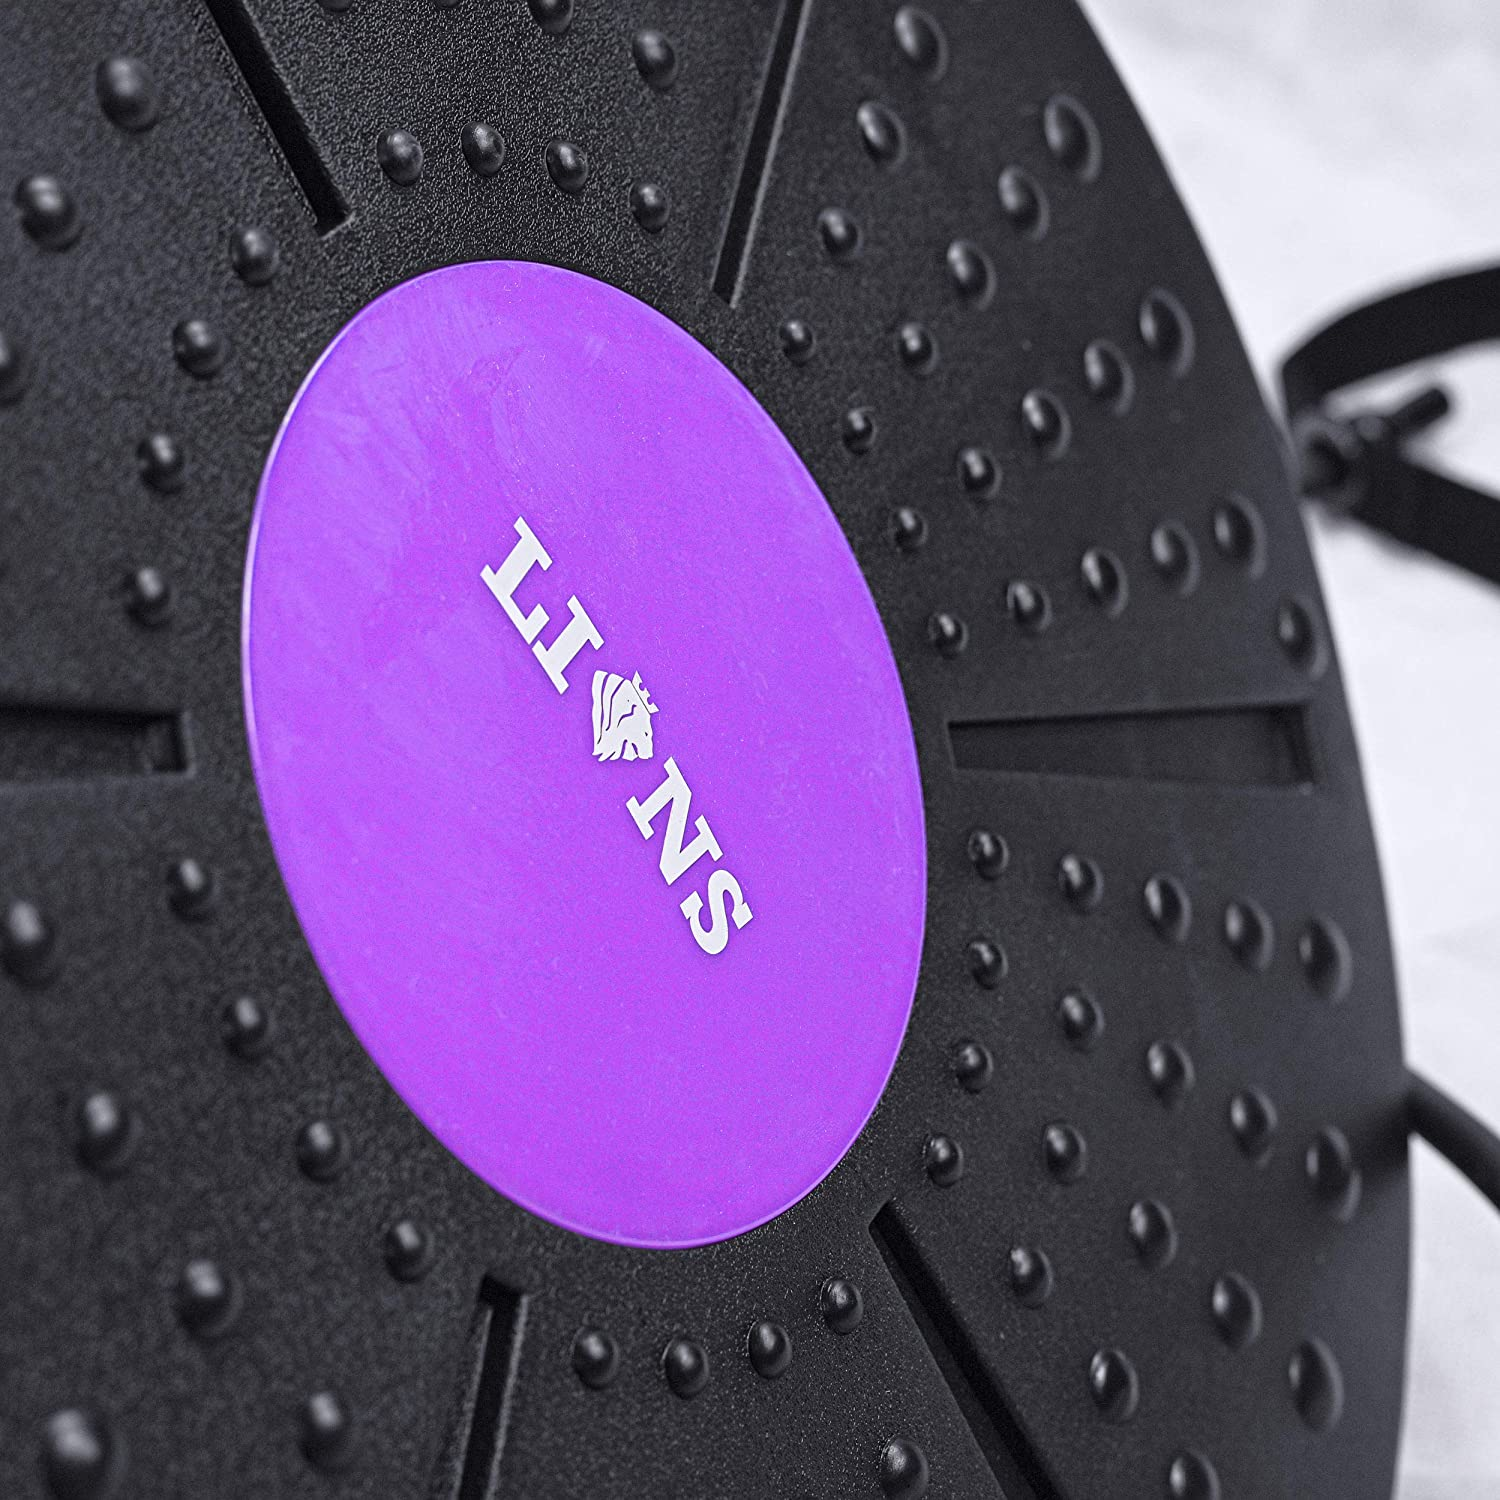 Pilates Lions Balance Board Wobble Pad with Resistance Gym Equipment for Adults Full Body Workout for Physio Core and Gymnastics